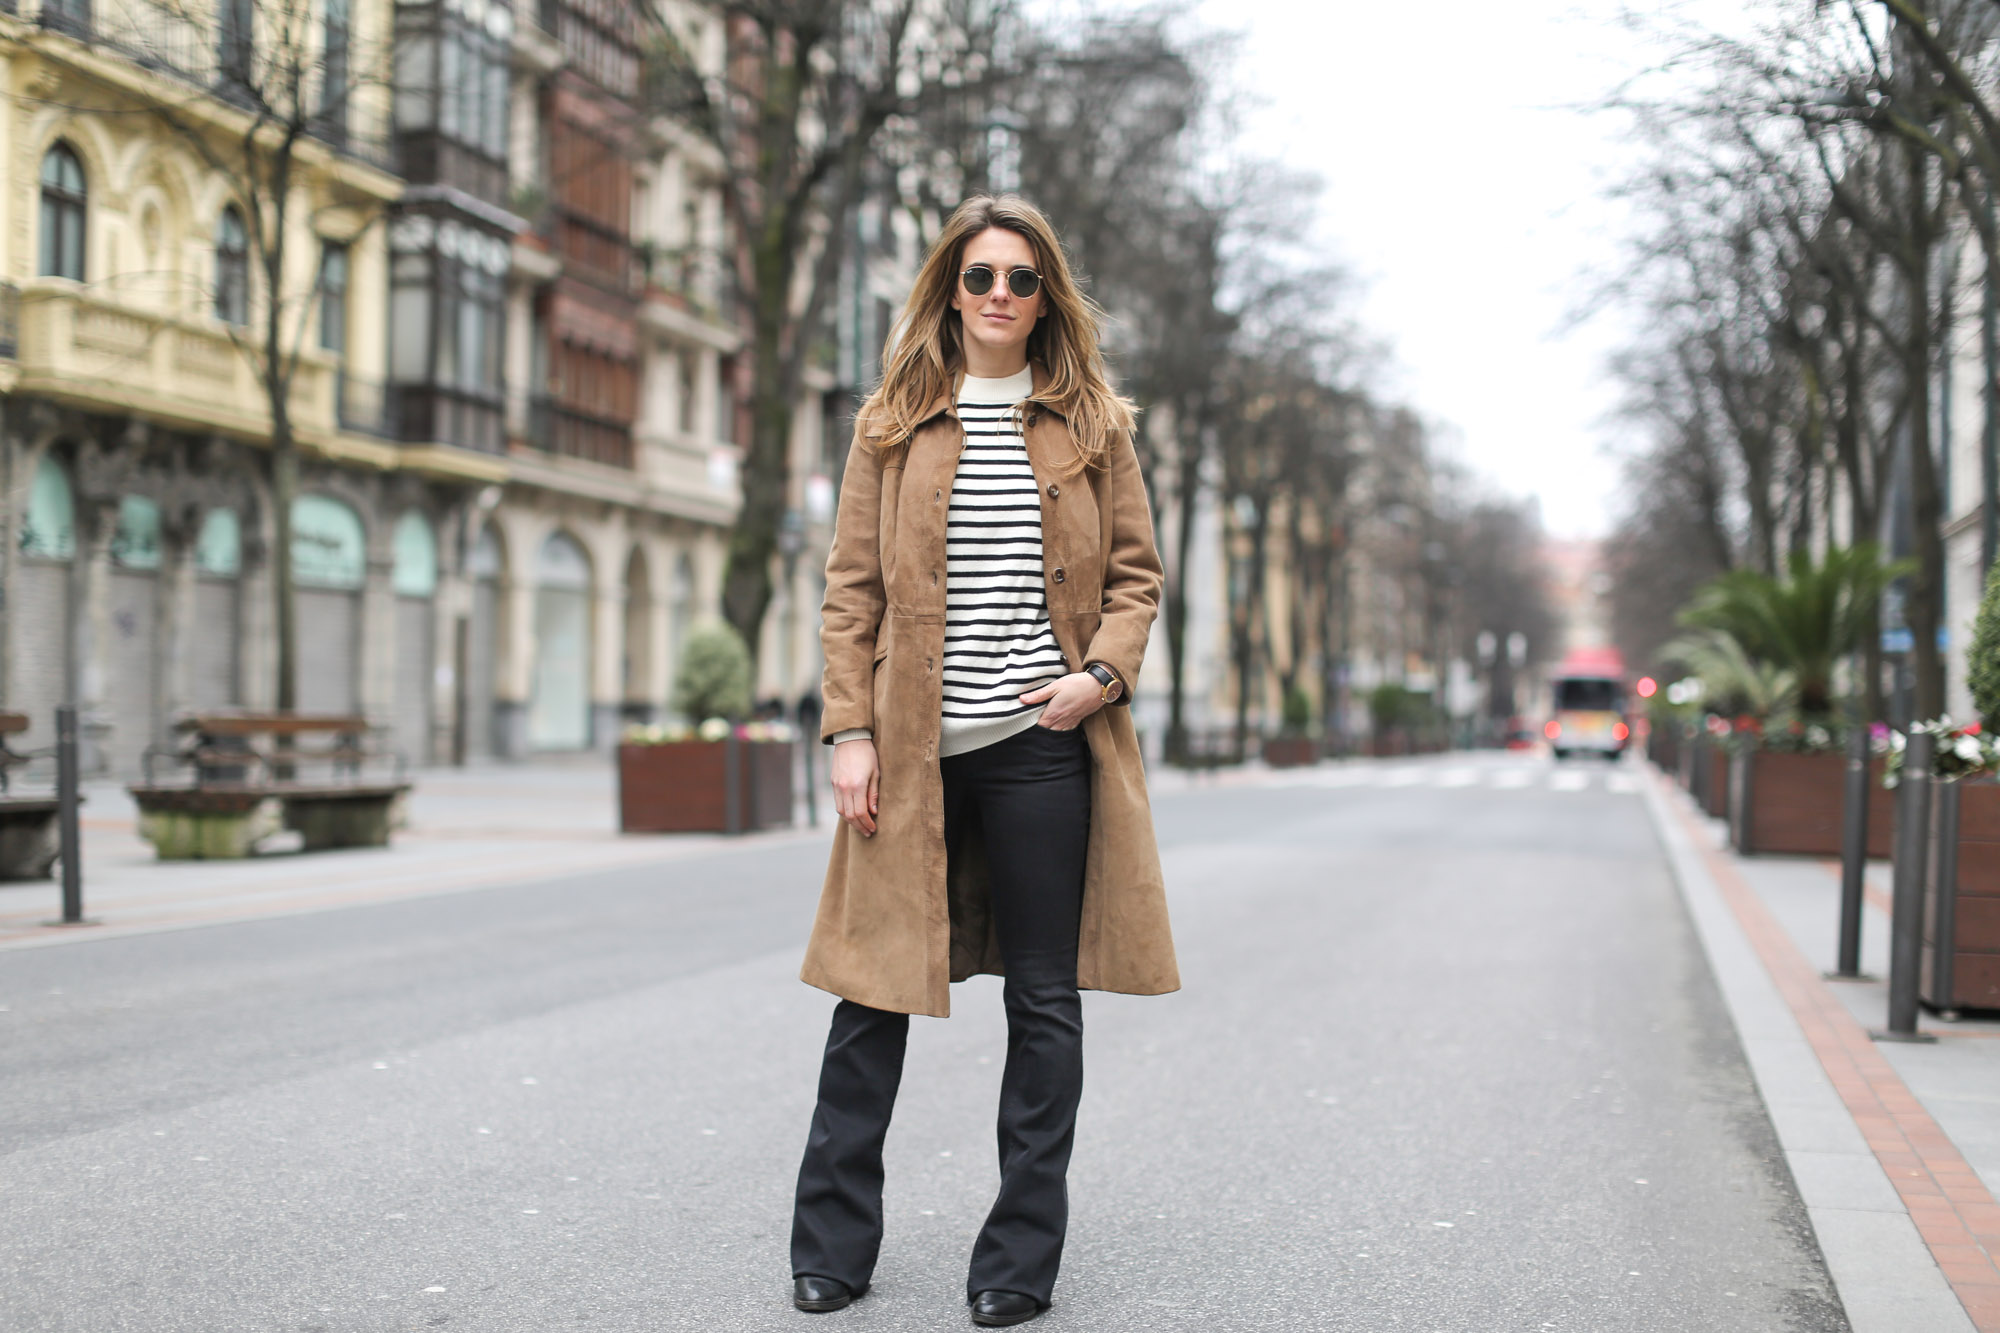 Clochet-streetstyle-black-flared-jeans-suede-vintage-coat-finery-london-bag-7